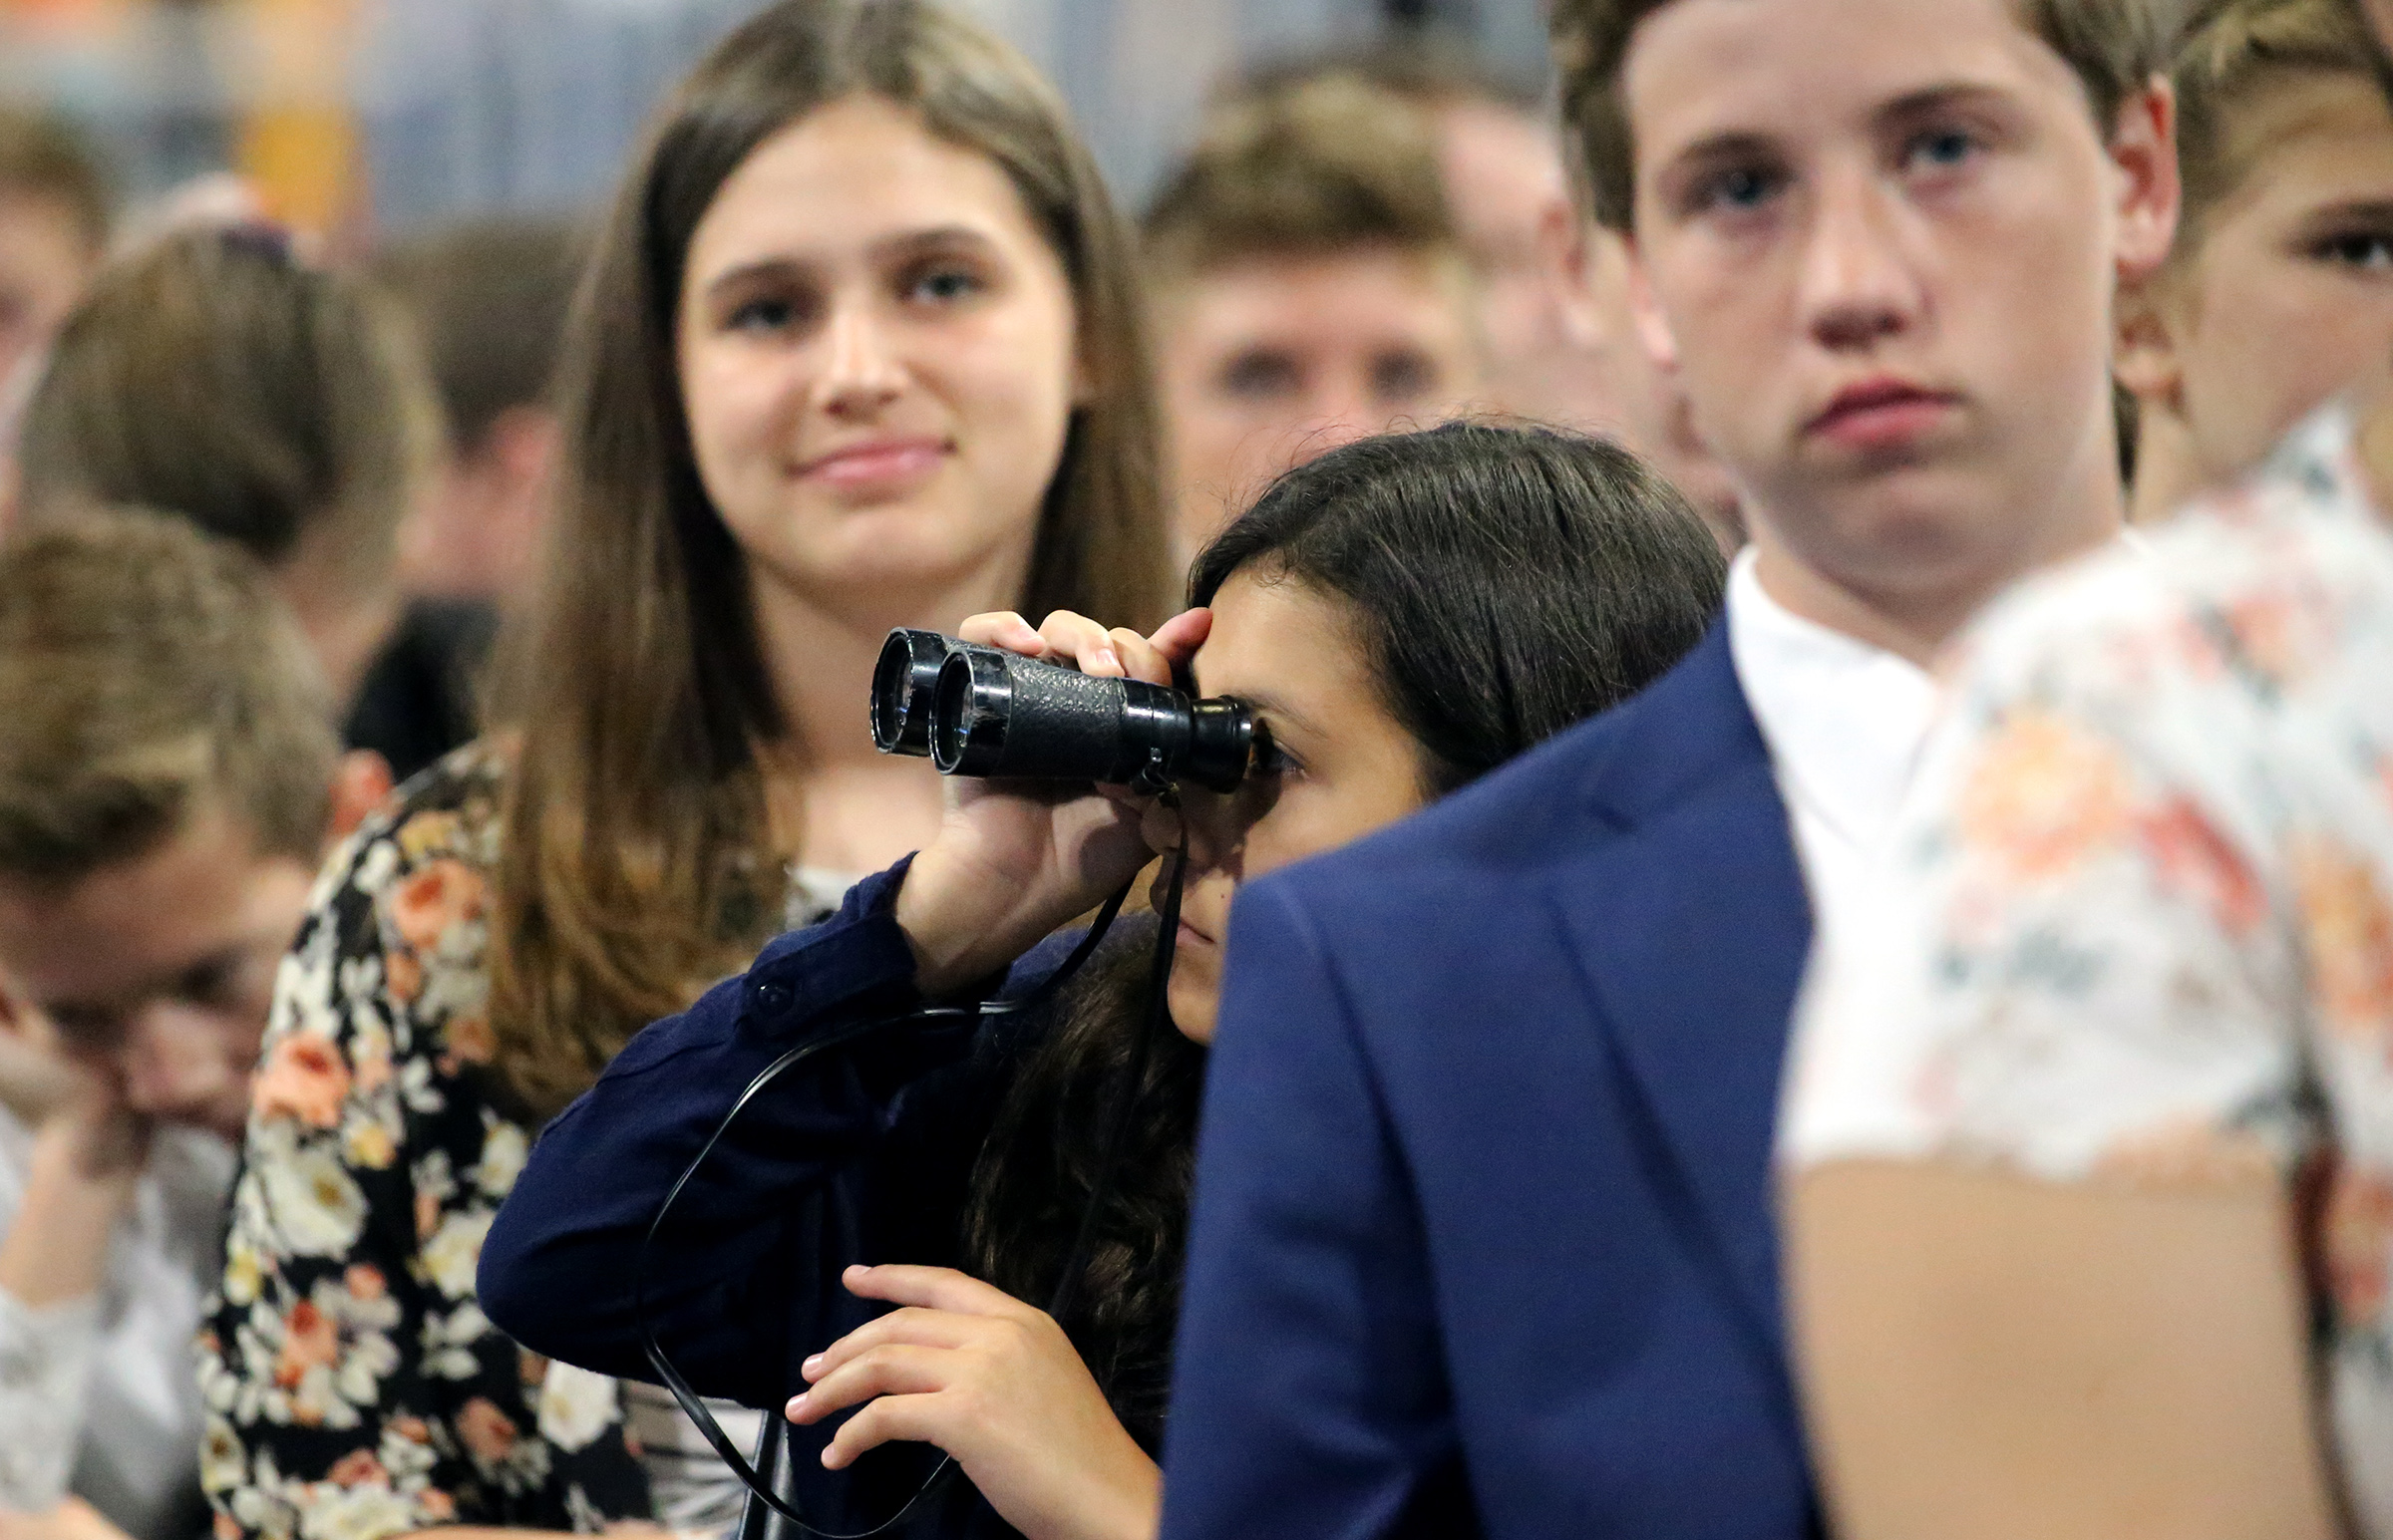 A young woman uses a pair of binoculars to look around the arena at a devotional with President Russell M. Nelson and others at the Amway Center in Orlando, Florida, on Sunday, June 9, 2019.